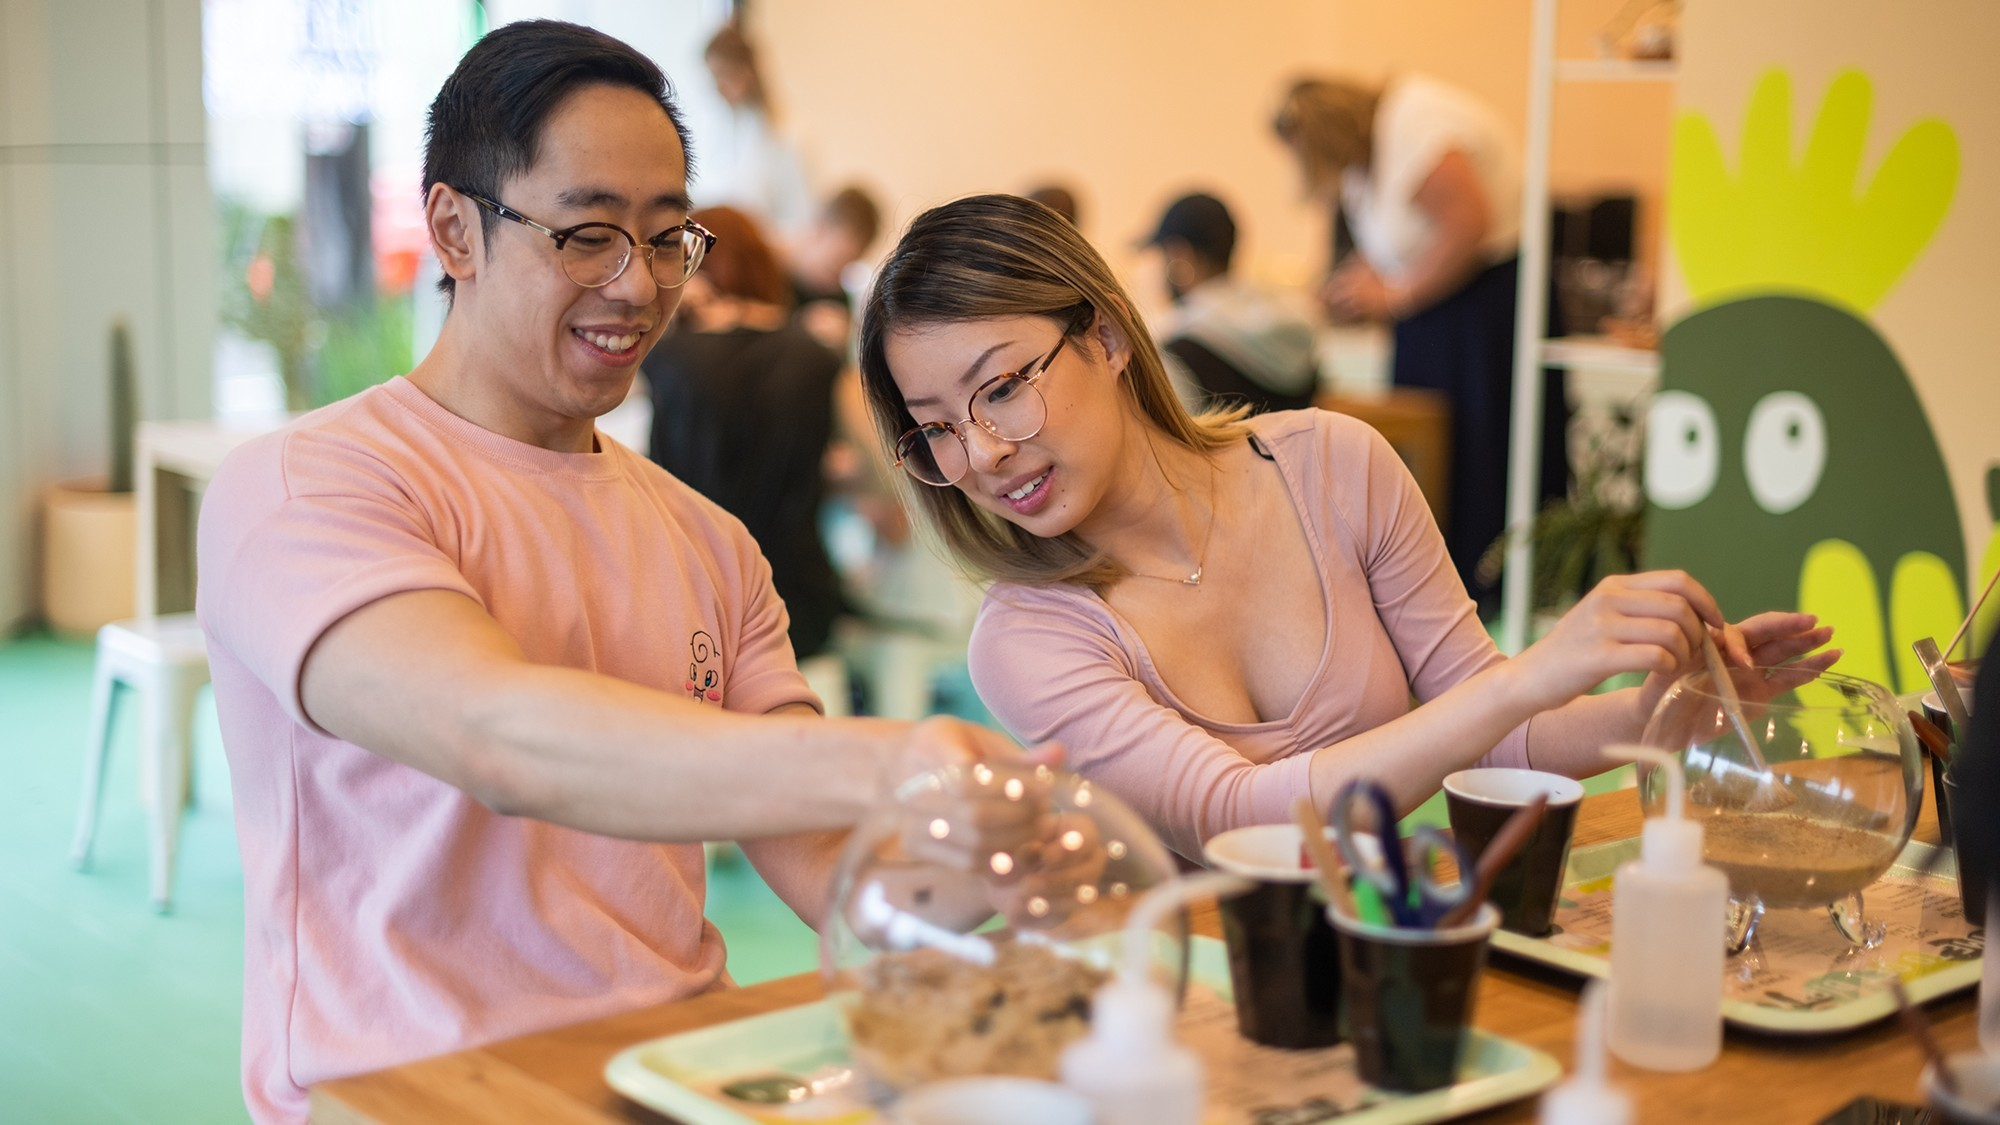 Two people sit at table, they are building terrariums.